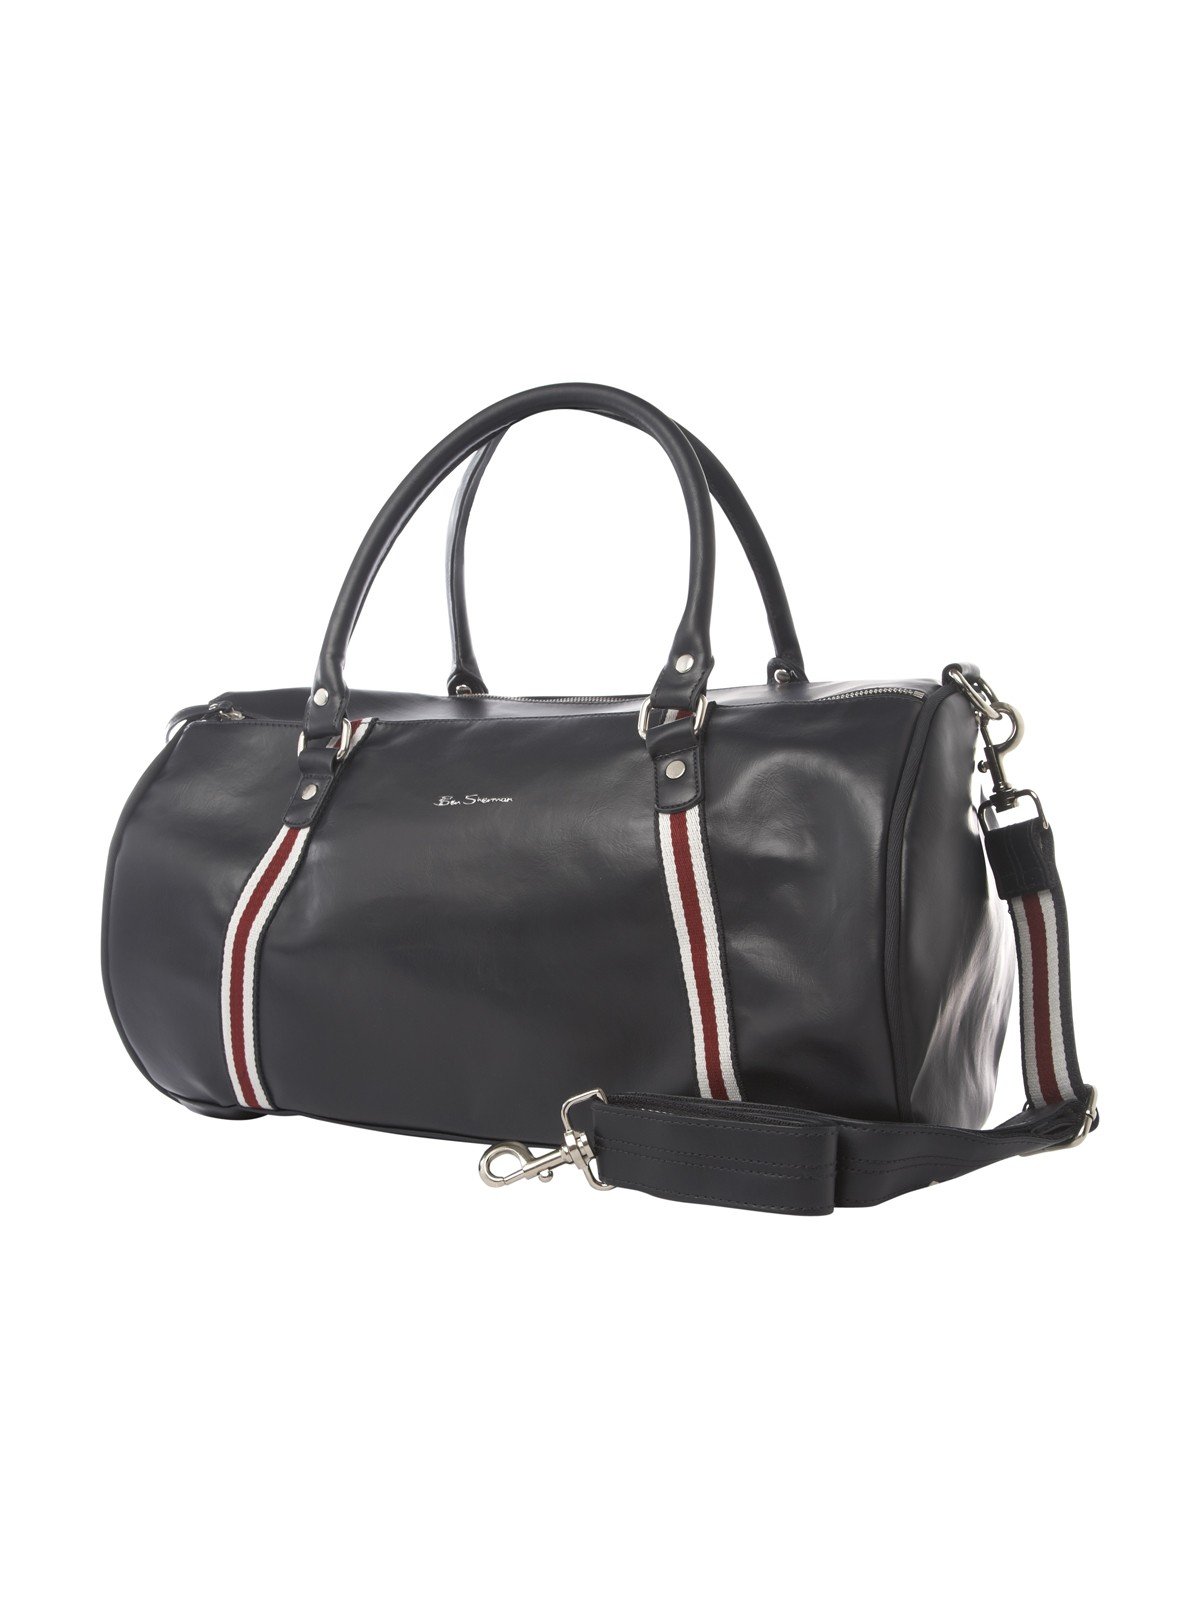 Shop for mens duffle bag online at Target. Free shipping on purchases over $35 and save 5% every day with your Target REDcard.